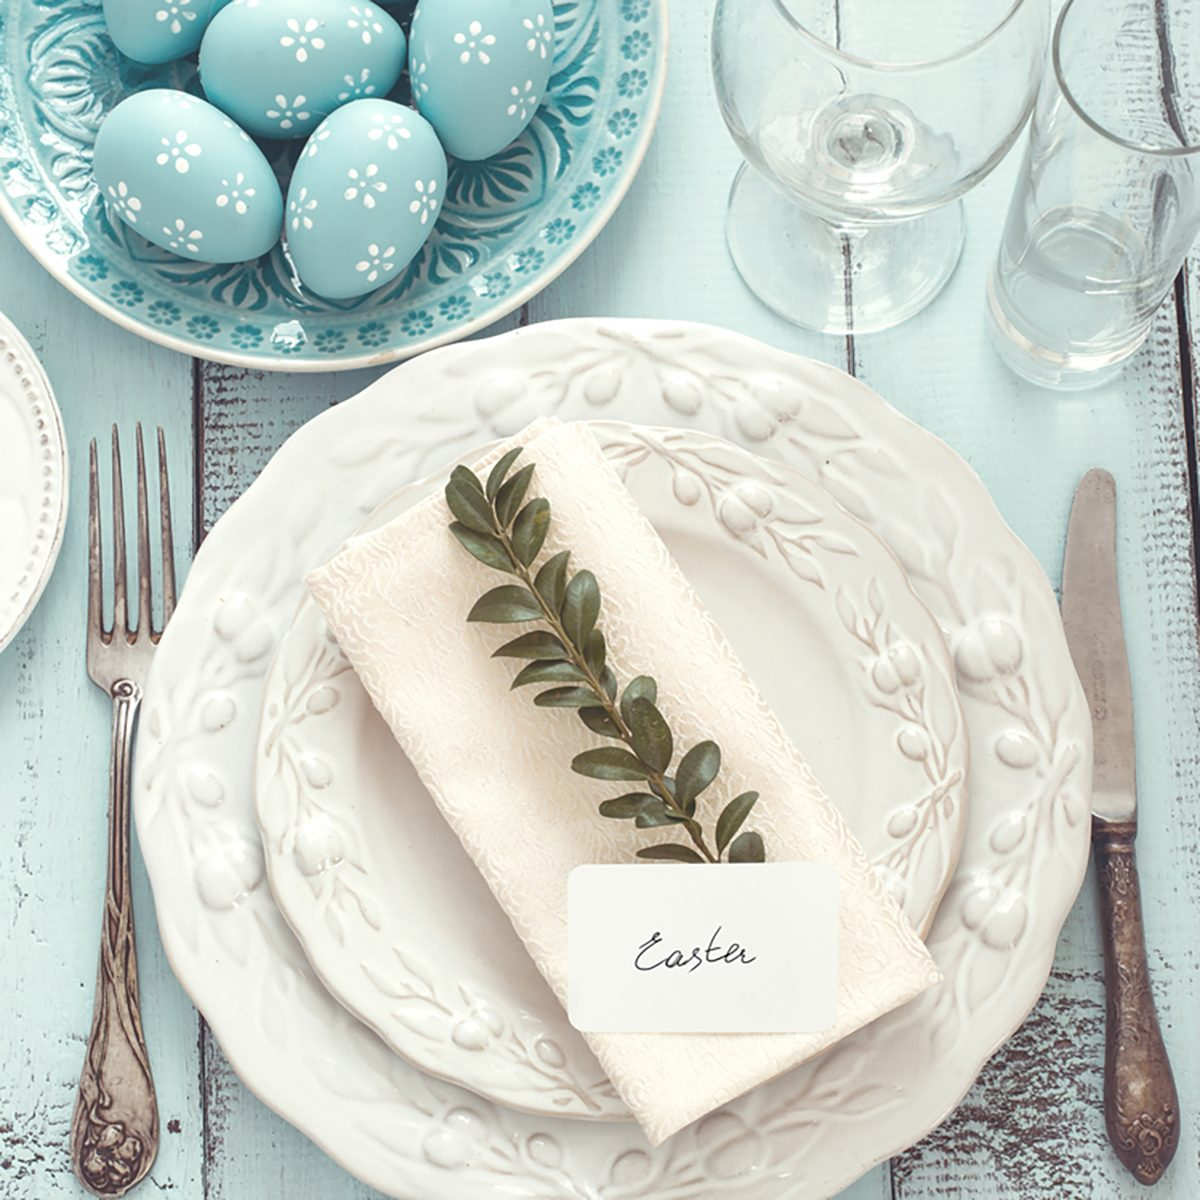 Easter table setting with holiday decor on mint wooden background